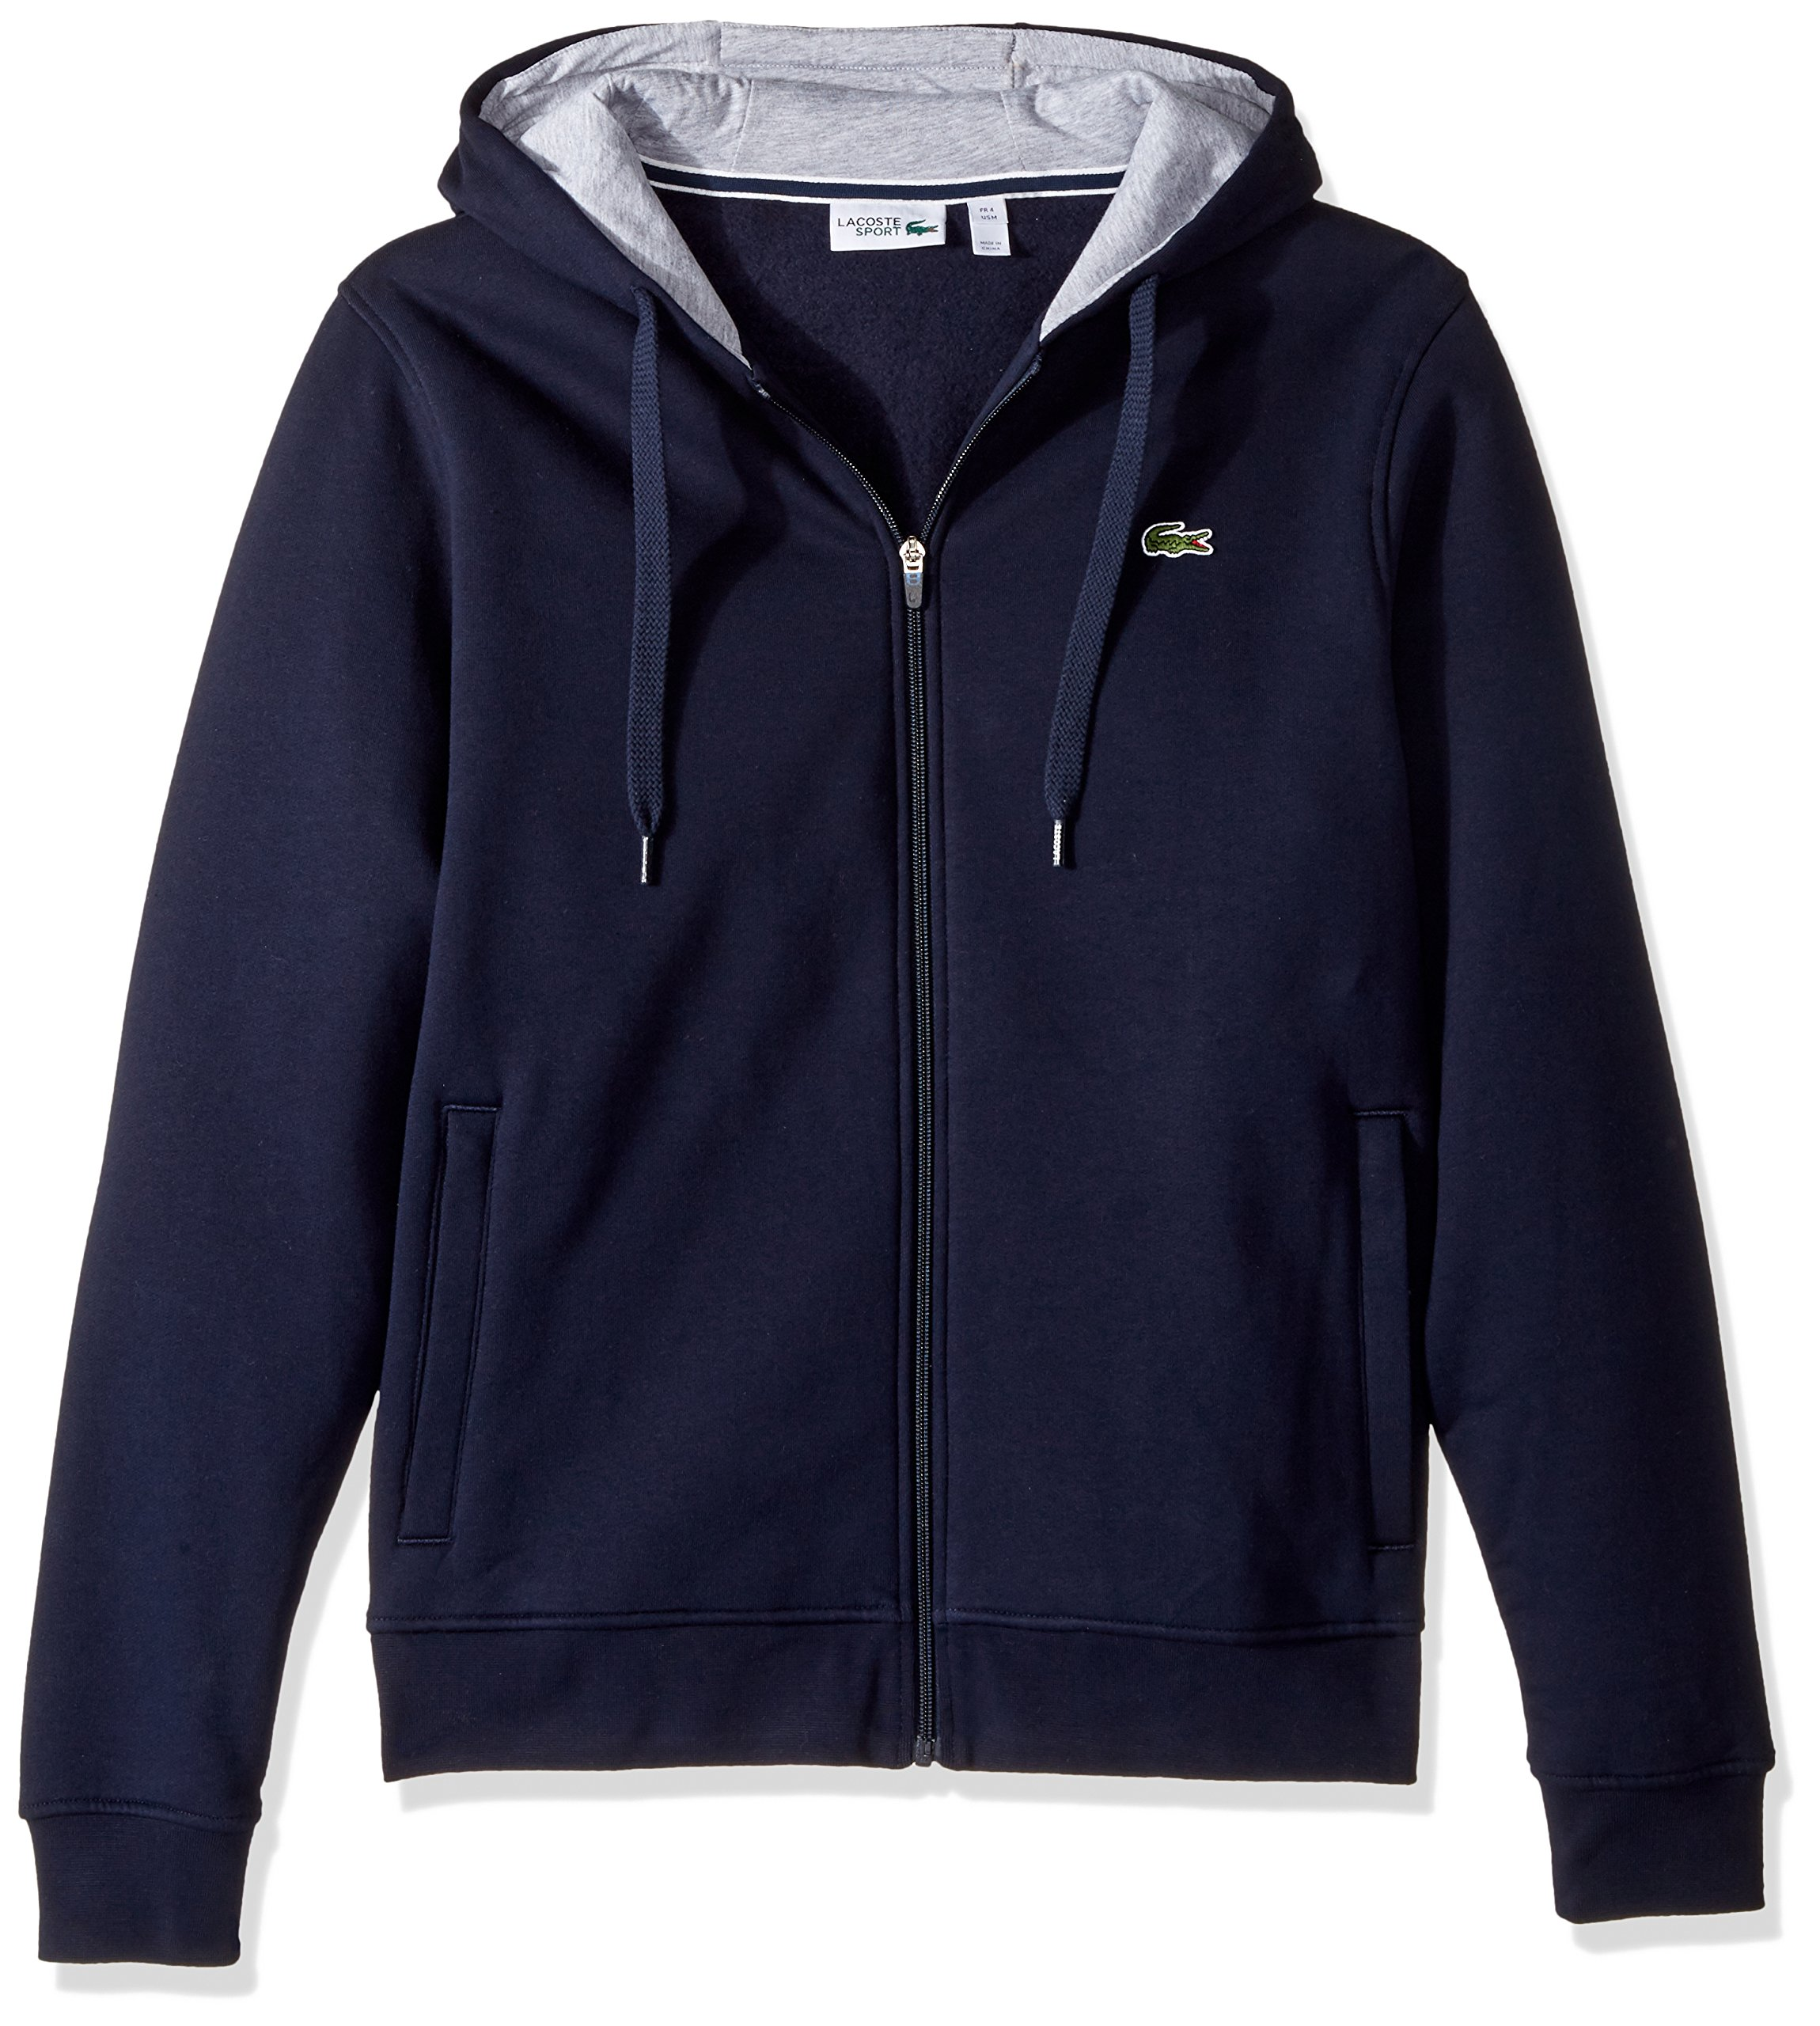 Lacoste Men's Full Zip Hoodie Fleece Sweatshirt, Navy Blue/Silver Chine, Small